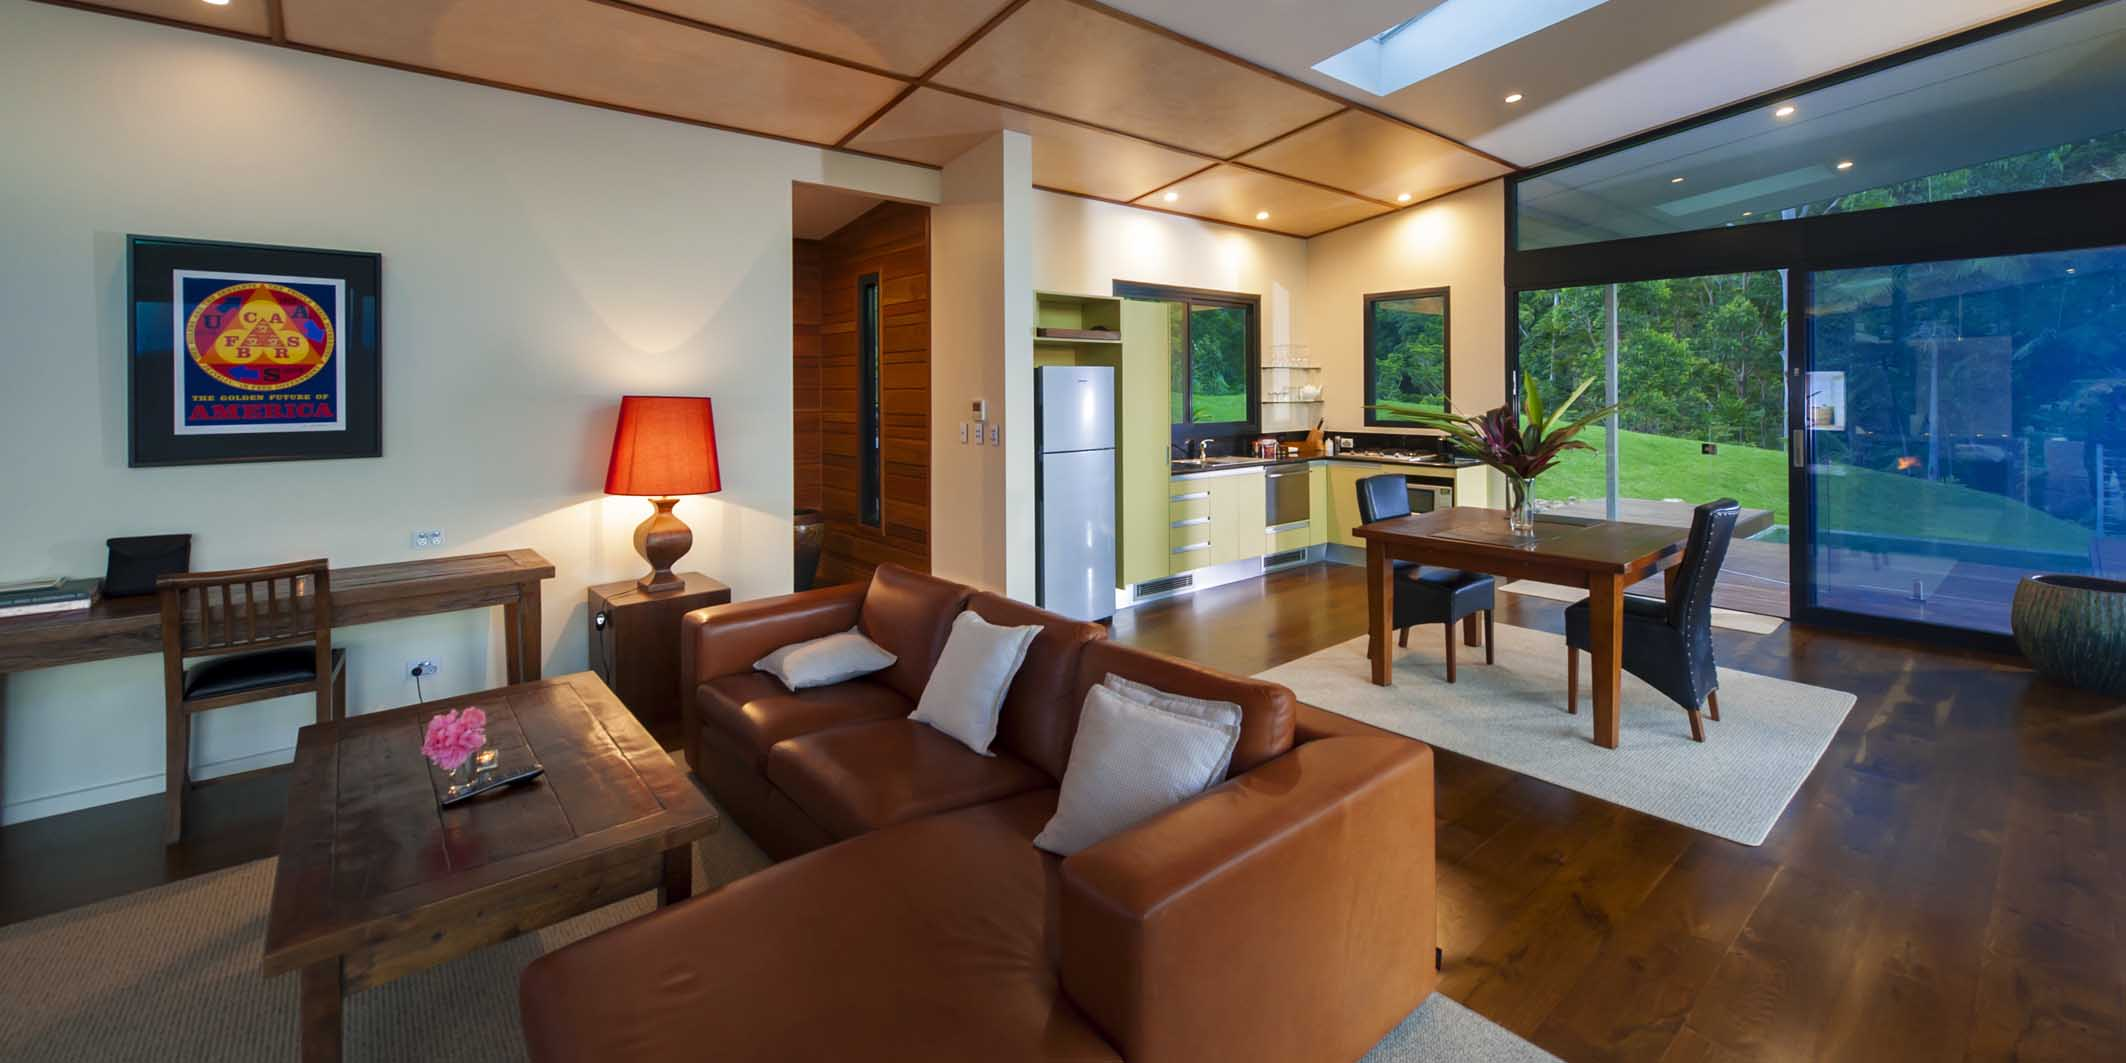 Luxury Mountain View Lodges have an architect-designed open plan with floor to ceiling rainforest views from everywhere